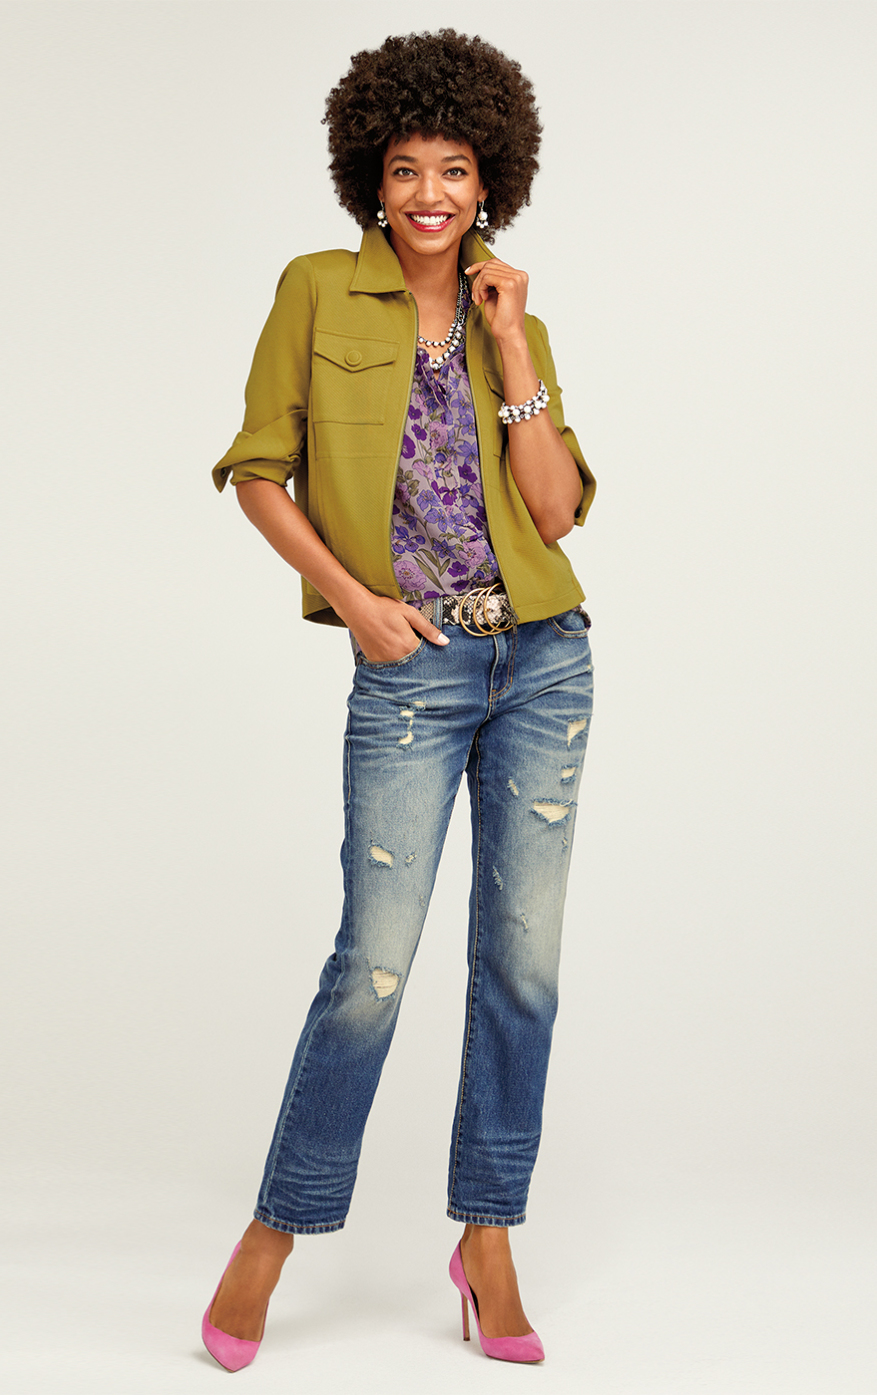 Touring Jacket in Moss, 100% Boyfriend in Craftsman Wash, Trifle Top in Plum Floral, Racerback Cami in Violet